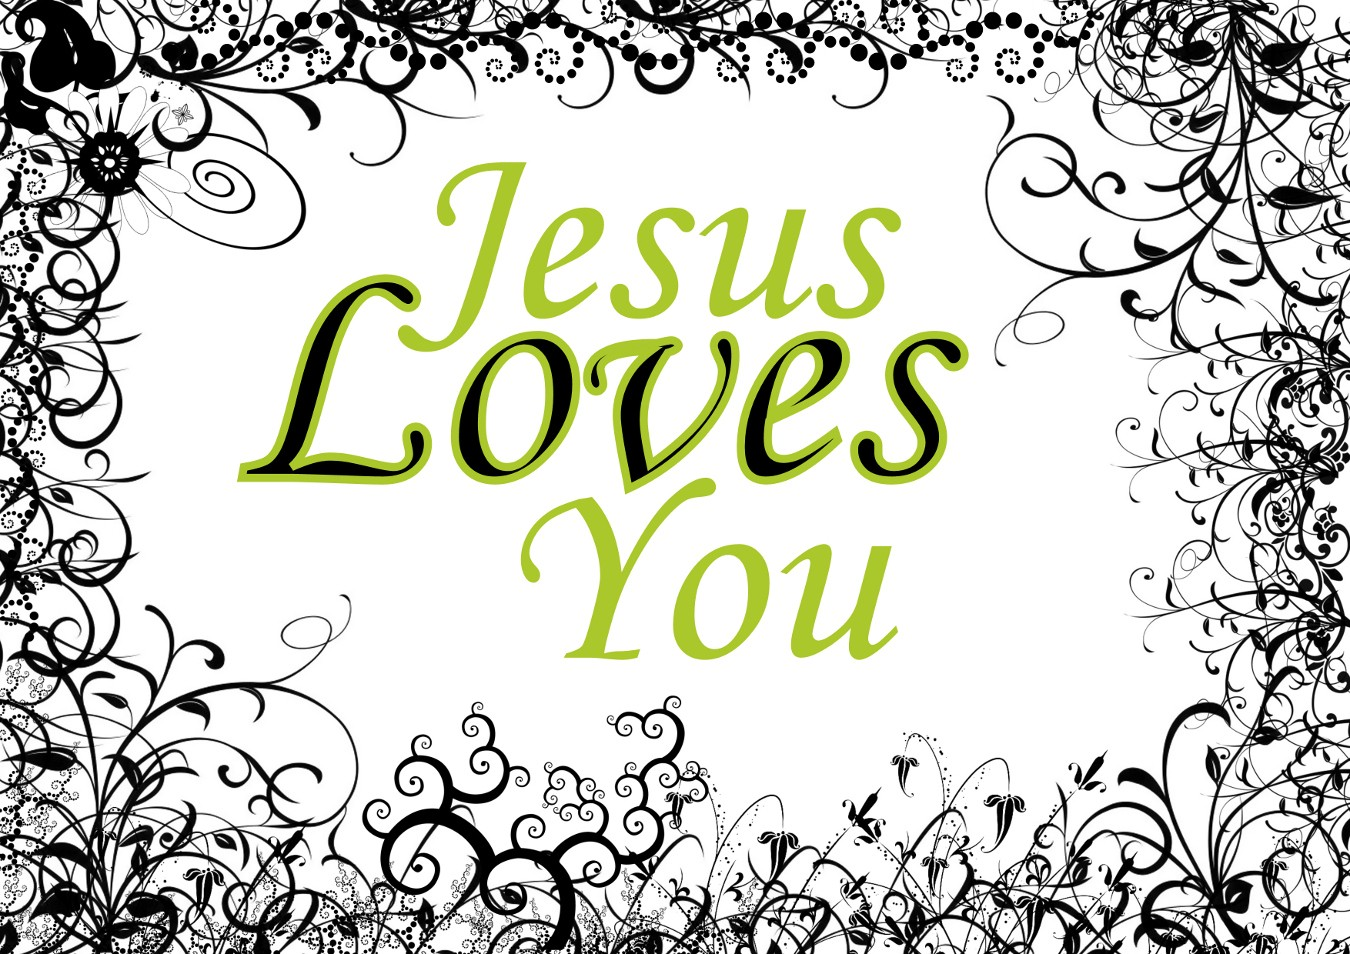 Love You Jesus Wallpapers : Jesus Loves You Wallpapers